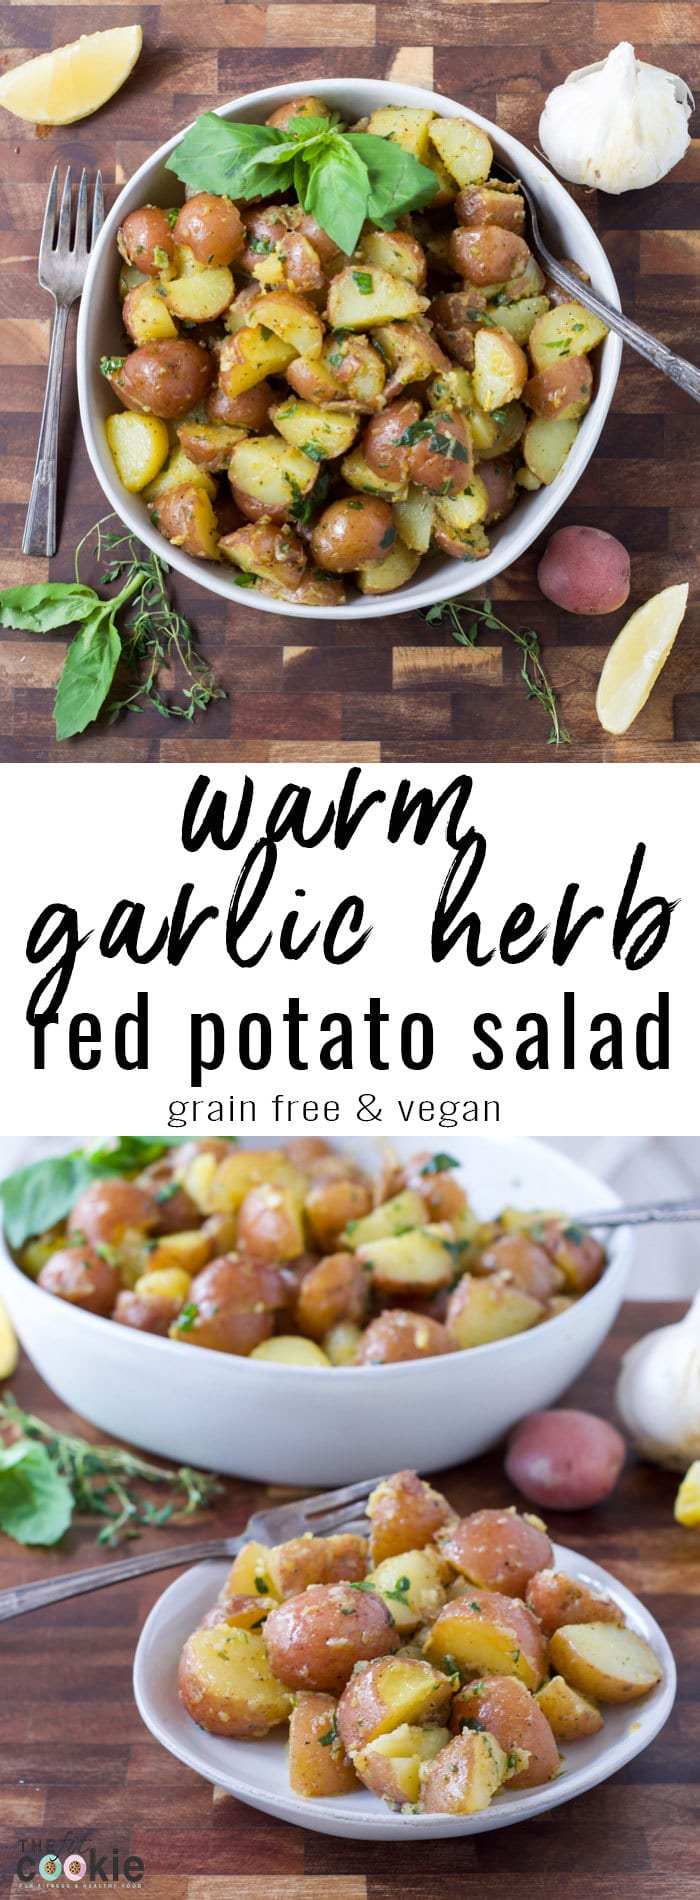 Make a healthier potato salad that's great any time of year! This Warm Garlic Herb Red Potato Salad is perfect as an allergy friendly side dish for any occasion, and looks impressive as a dinner party side dish. This recipe has no mayo and is also grain free, gluten free, dairy free, egg free, and vegan. - #AD #Potatoes @TheFitCookie #glutenfree #nomayo #vegan #CLVR